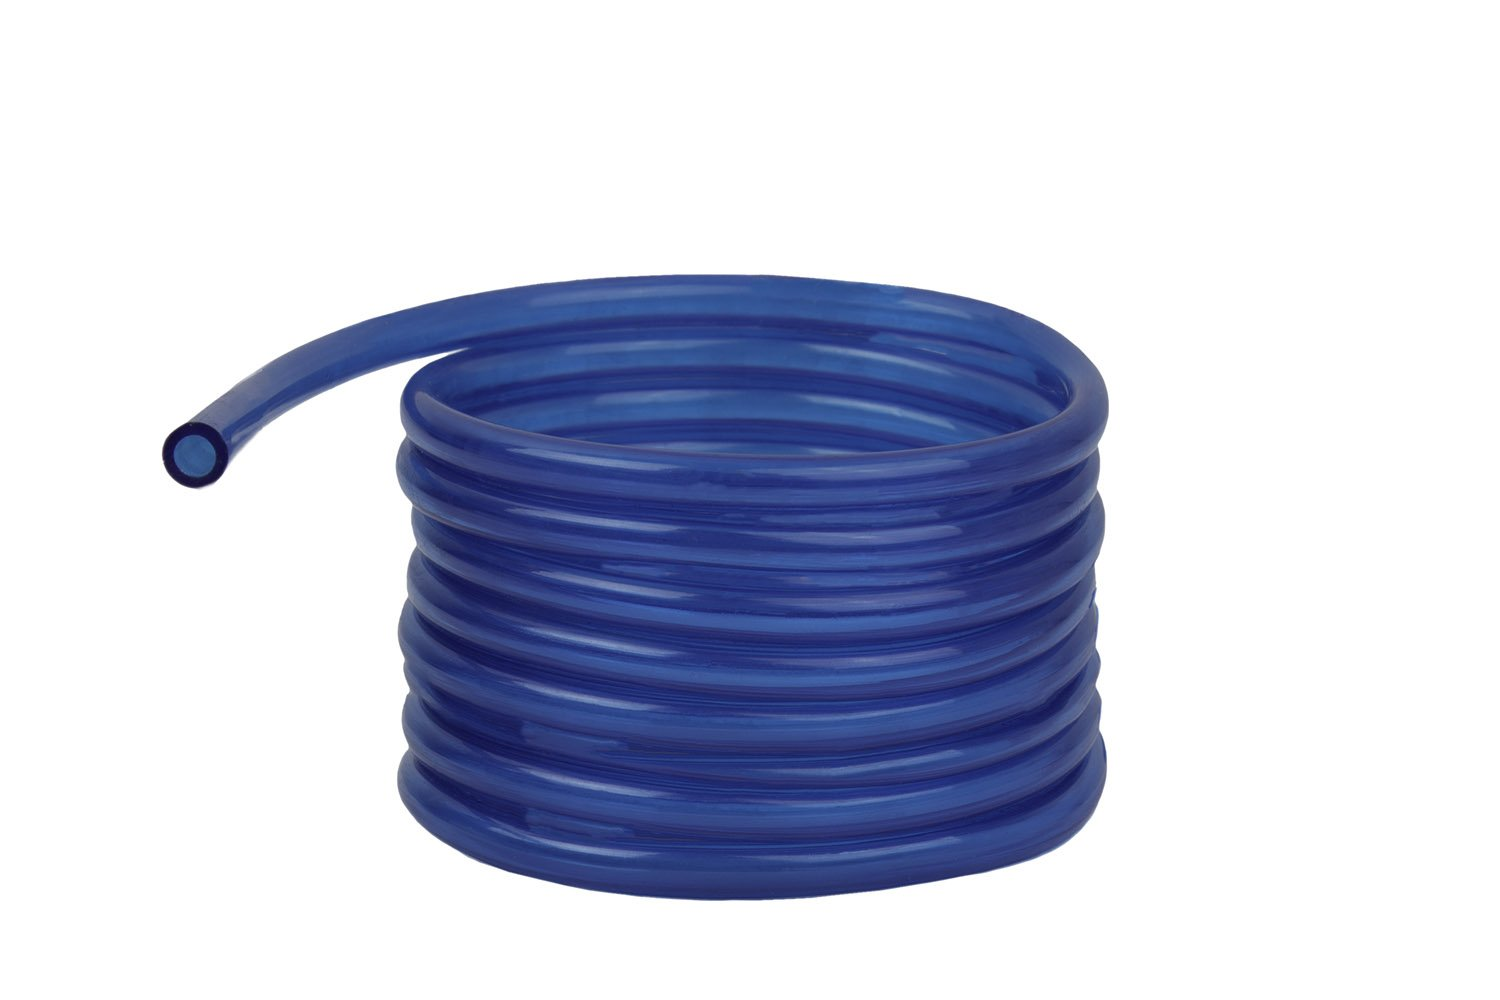 Raider Polyurethane Fuel Gas Line Tubing Hose Roll Blue (5 Ft. x 3/16 In.)